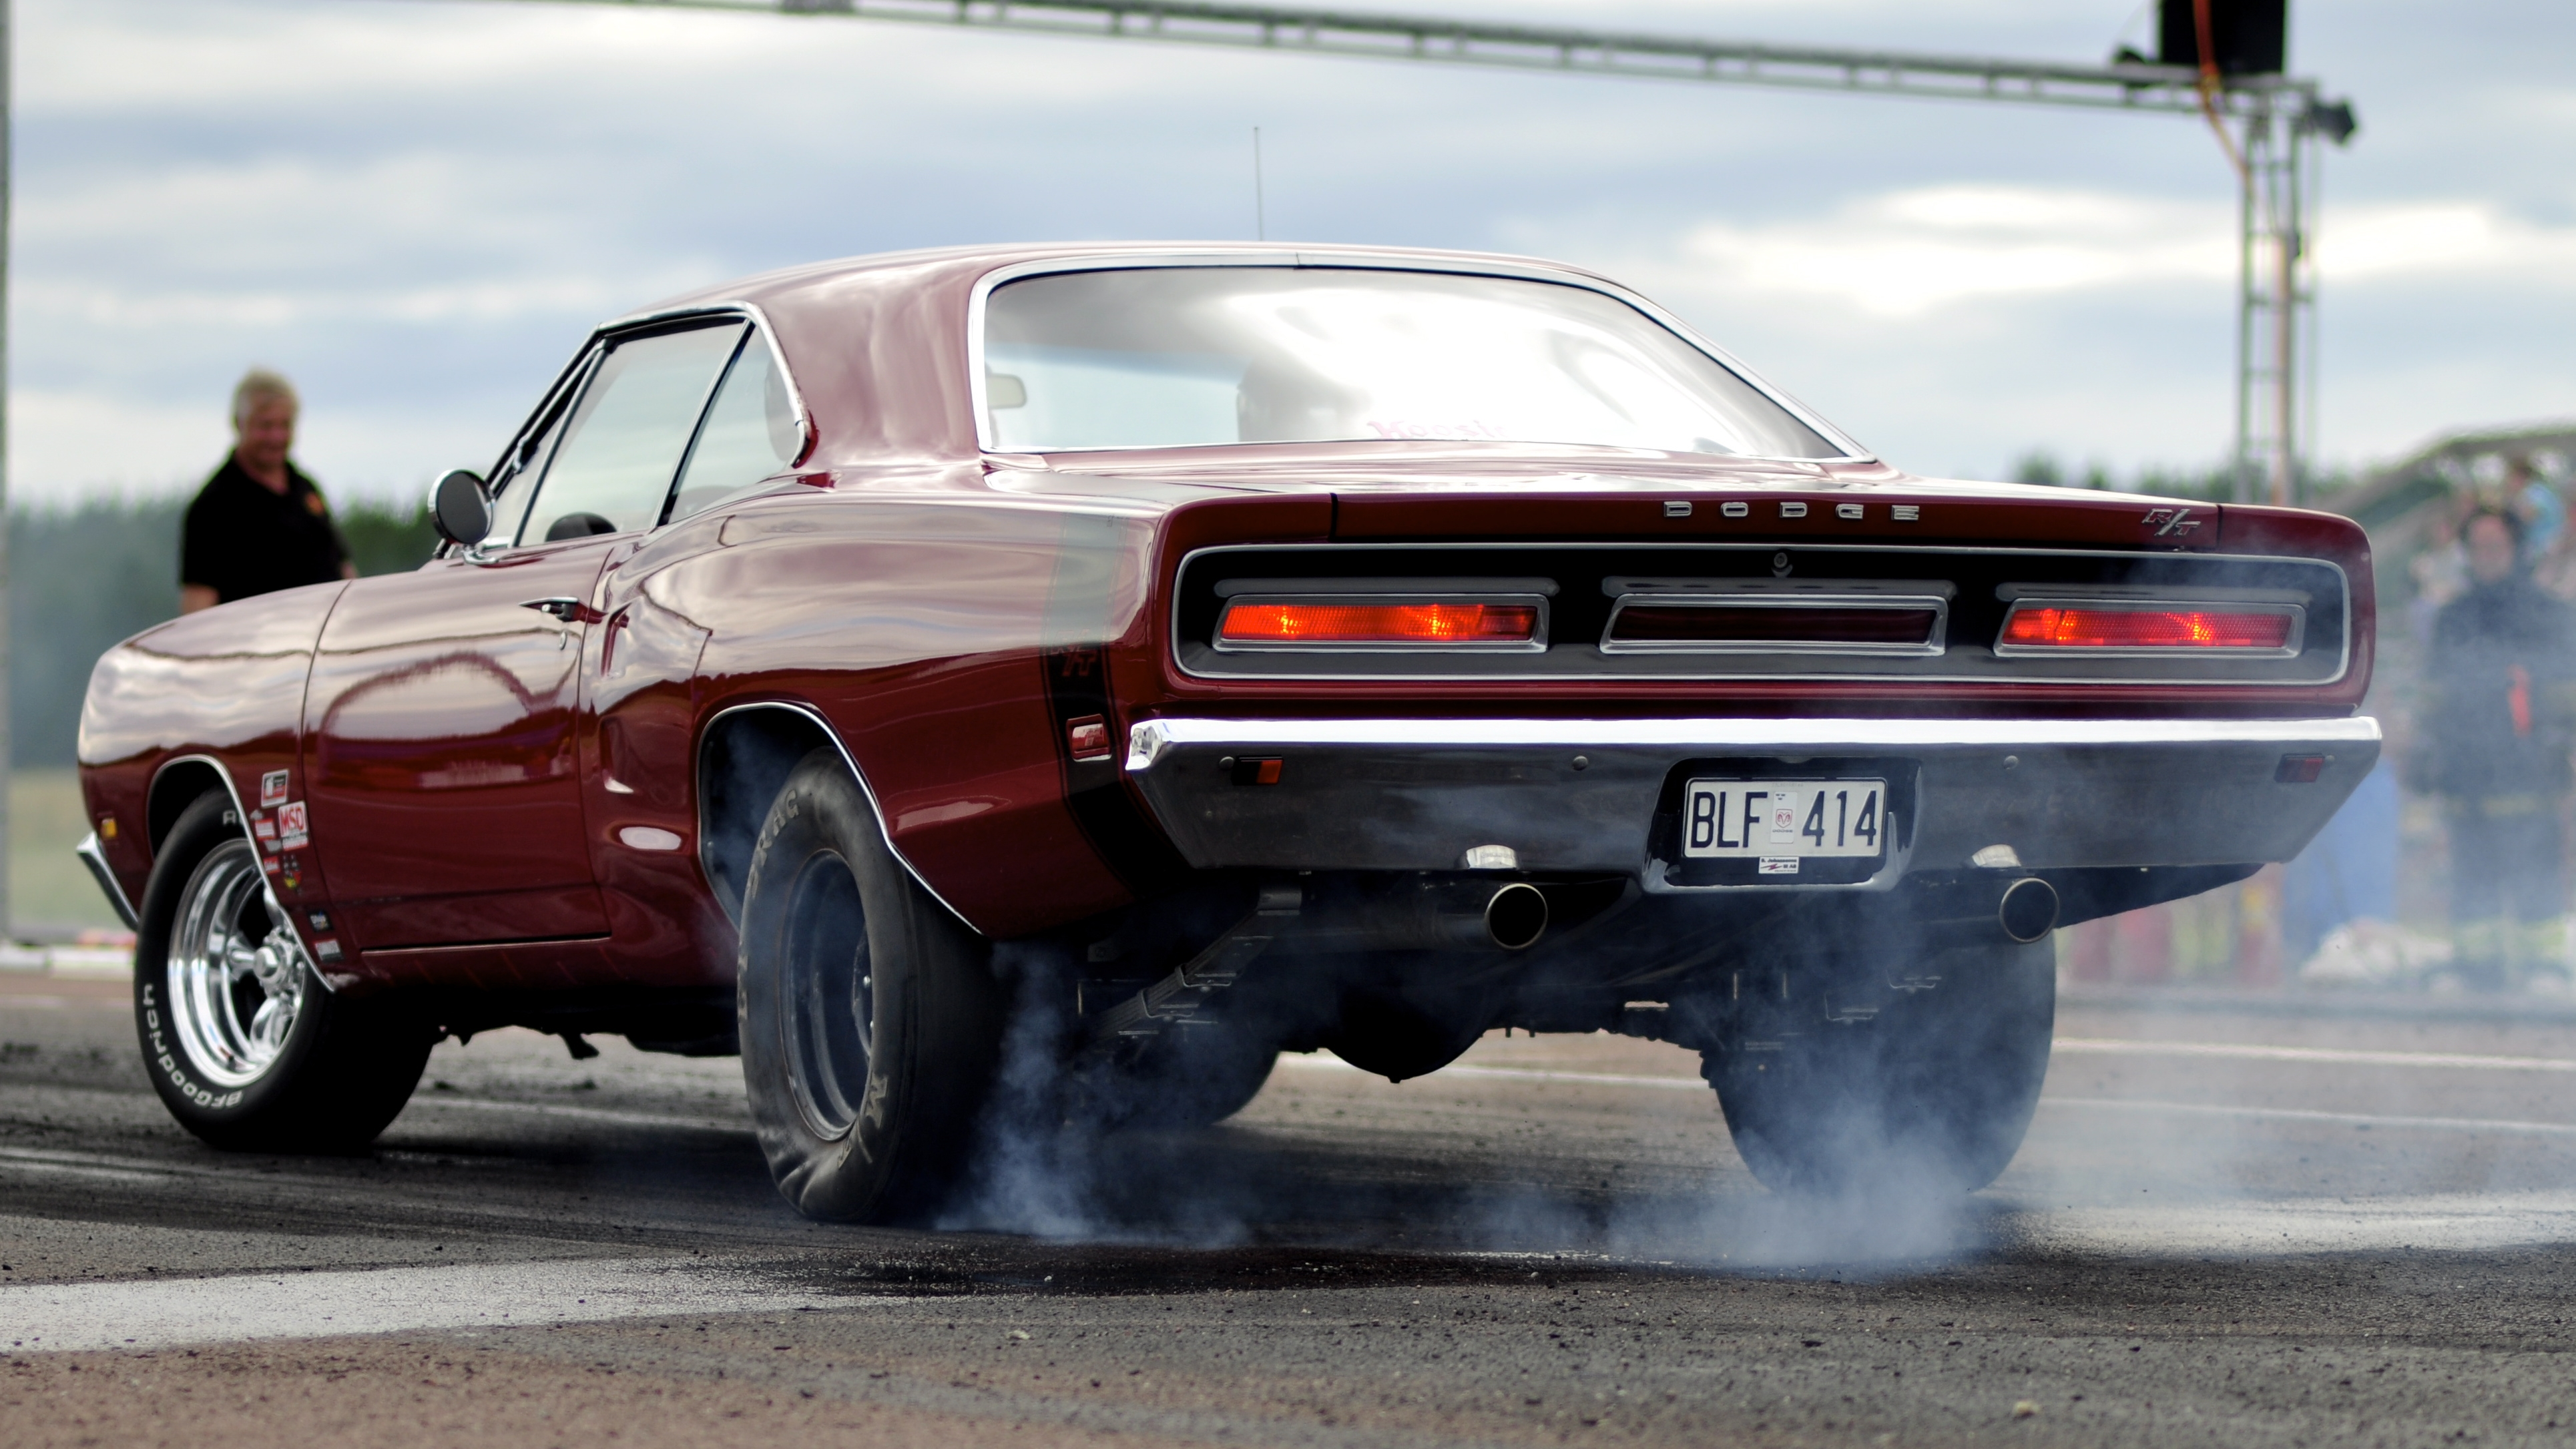 Dodge Charger 4k Ultra Hd Wallpaper Background Image 3859x2171